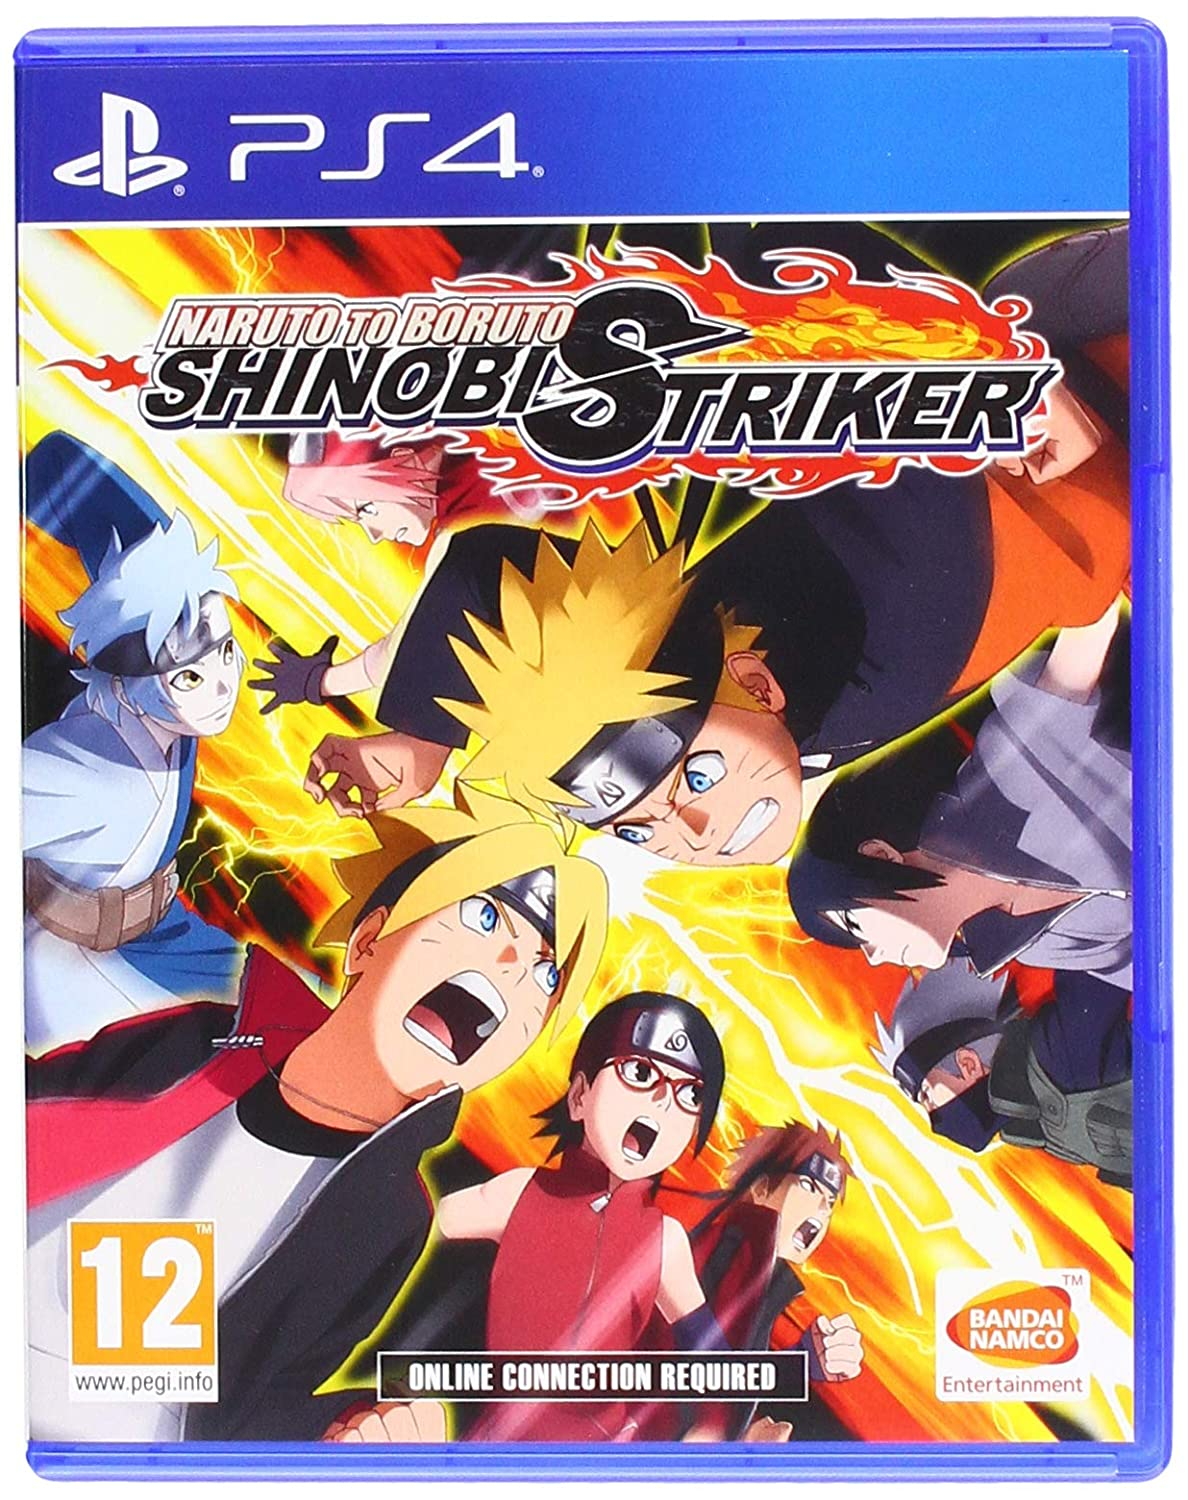 Amazon.com: Naruto to Boruto Shinobi Striker (PS4): Video Games